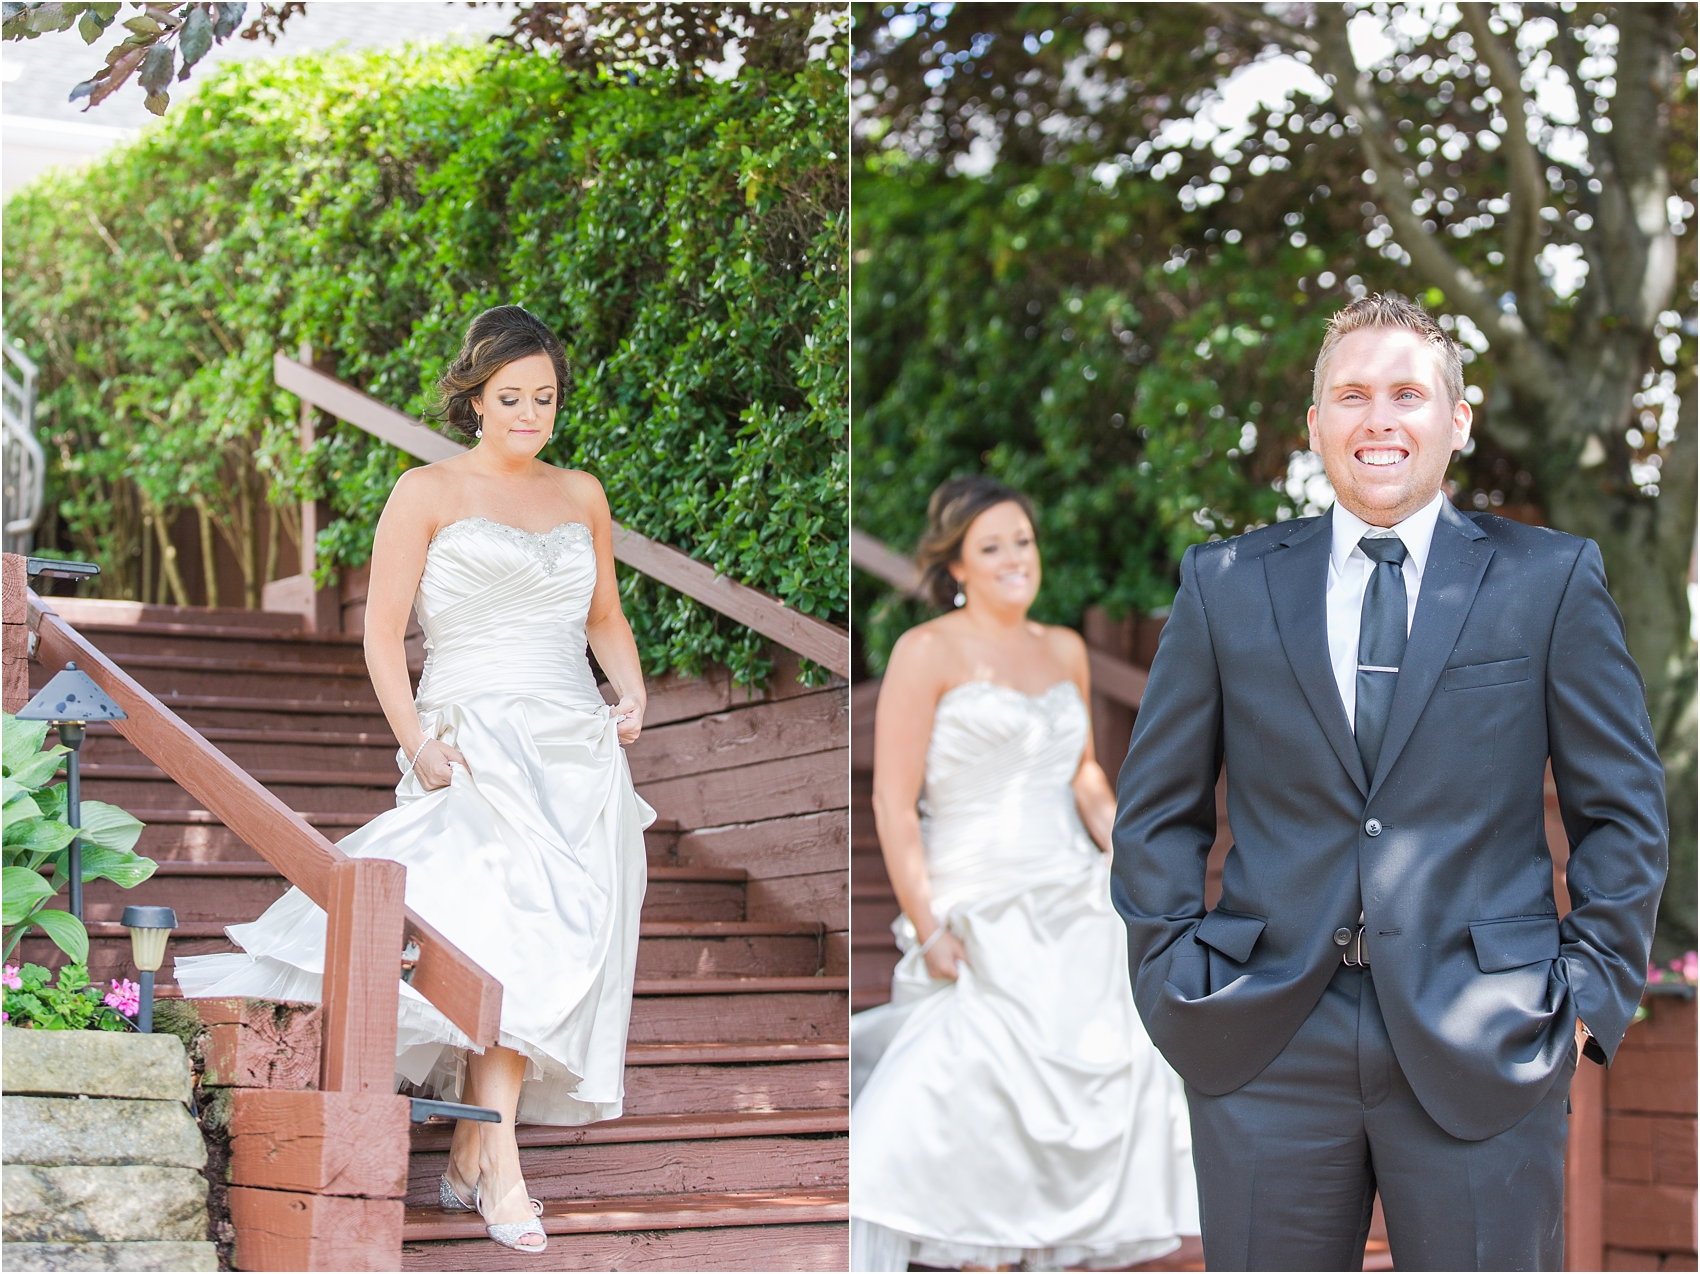 classic-wedding-photos-at-great-oaks-country-club-in-rochester-hills-mi-by-courtney-carolyn-photography_0027.jpg